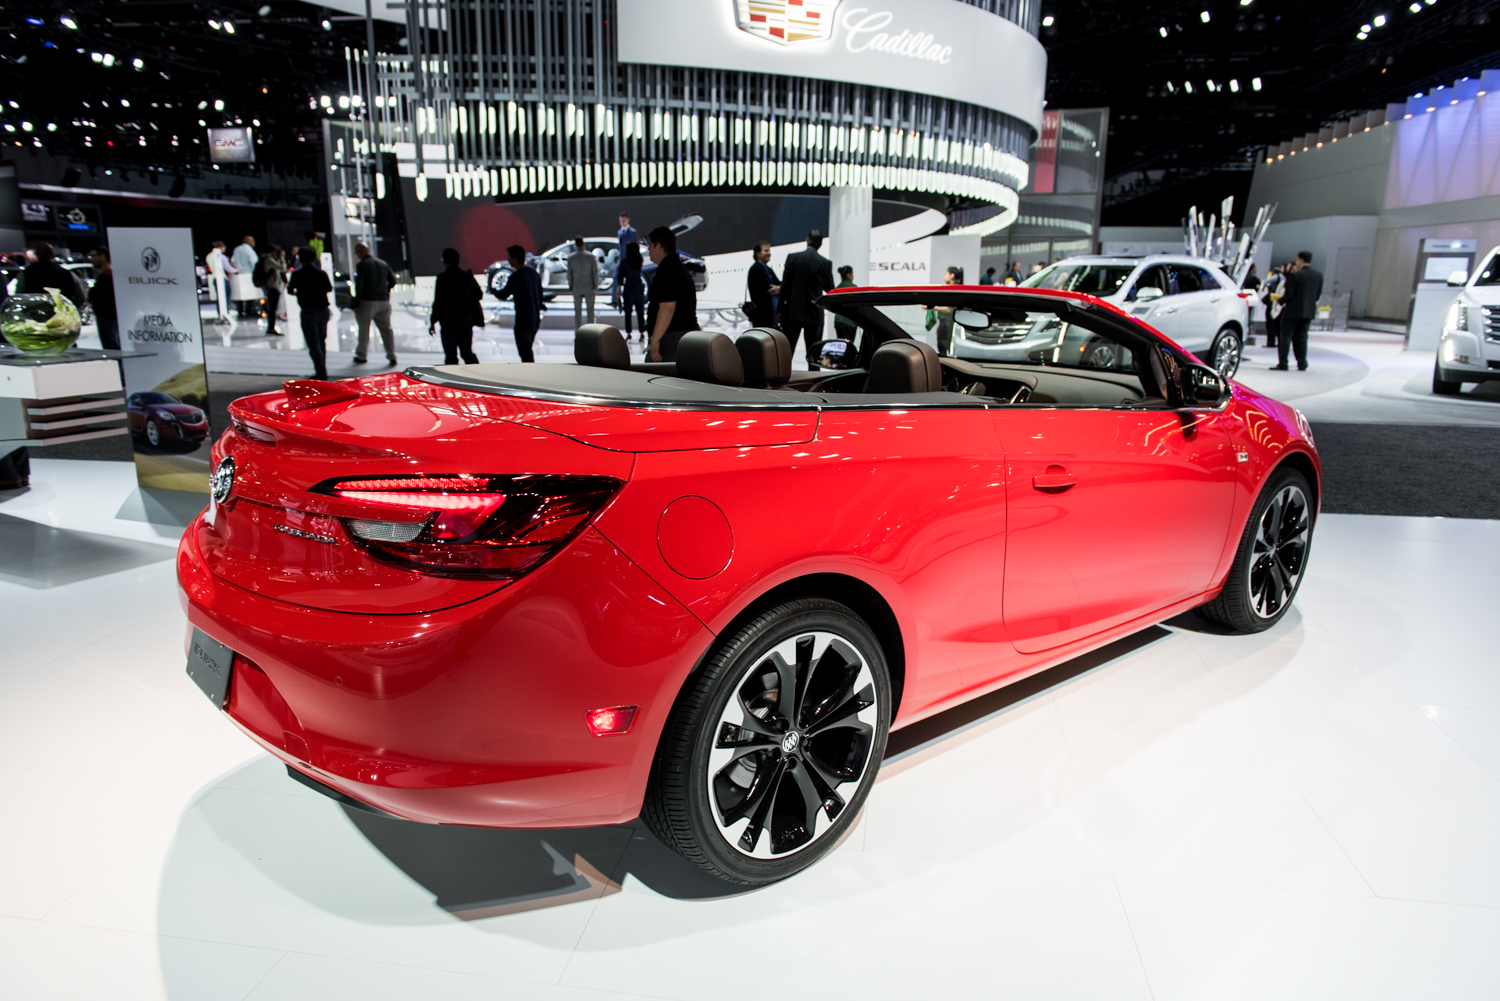 Buick Cascada Sales Numbers February 2018 | Gm Authority 2022 Buick Cascada Used, 0-60, Colors